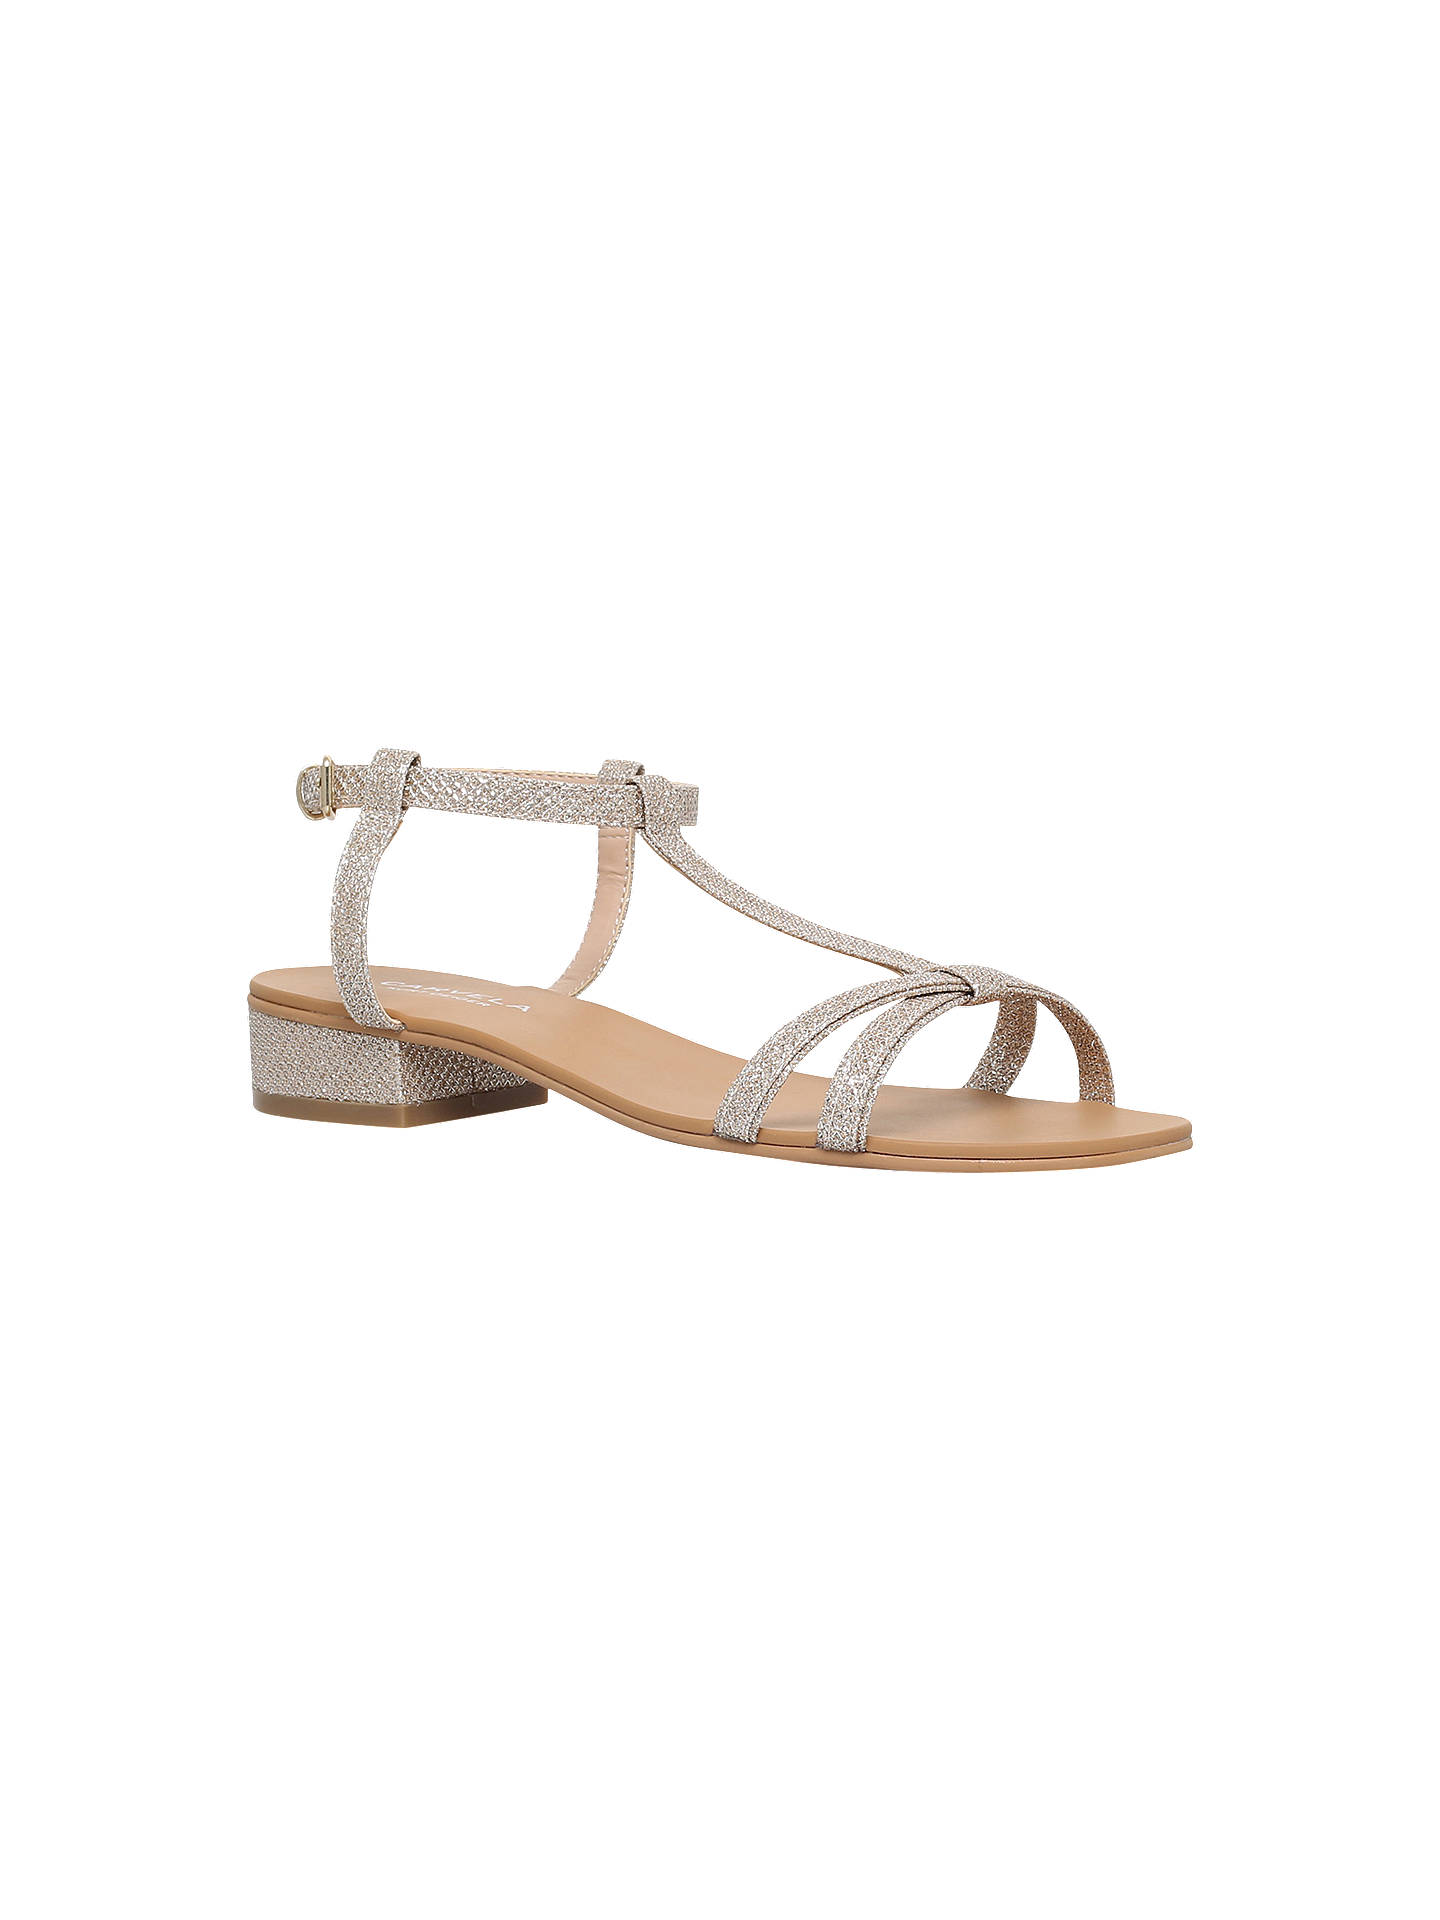 017b42083 Buy Carvela Bravo Flat Sandals, Gold, 3 Online at johnlewis.com ...